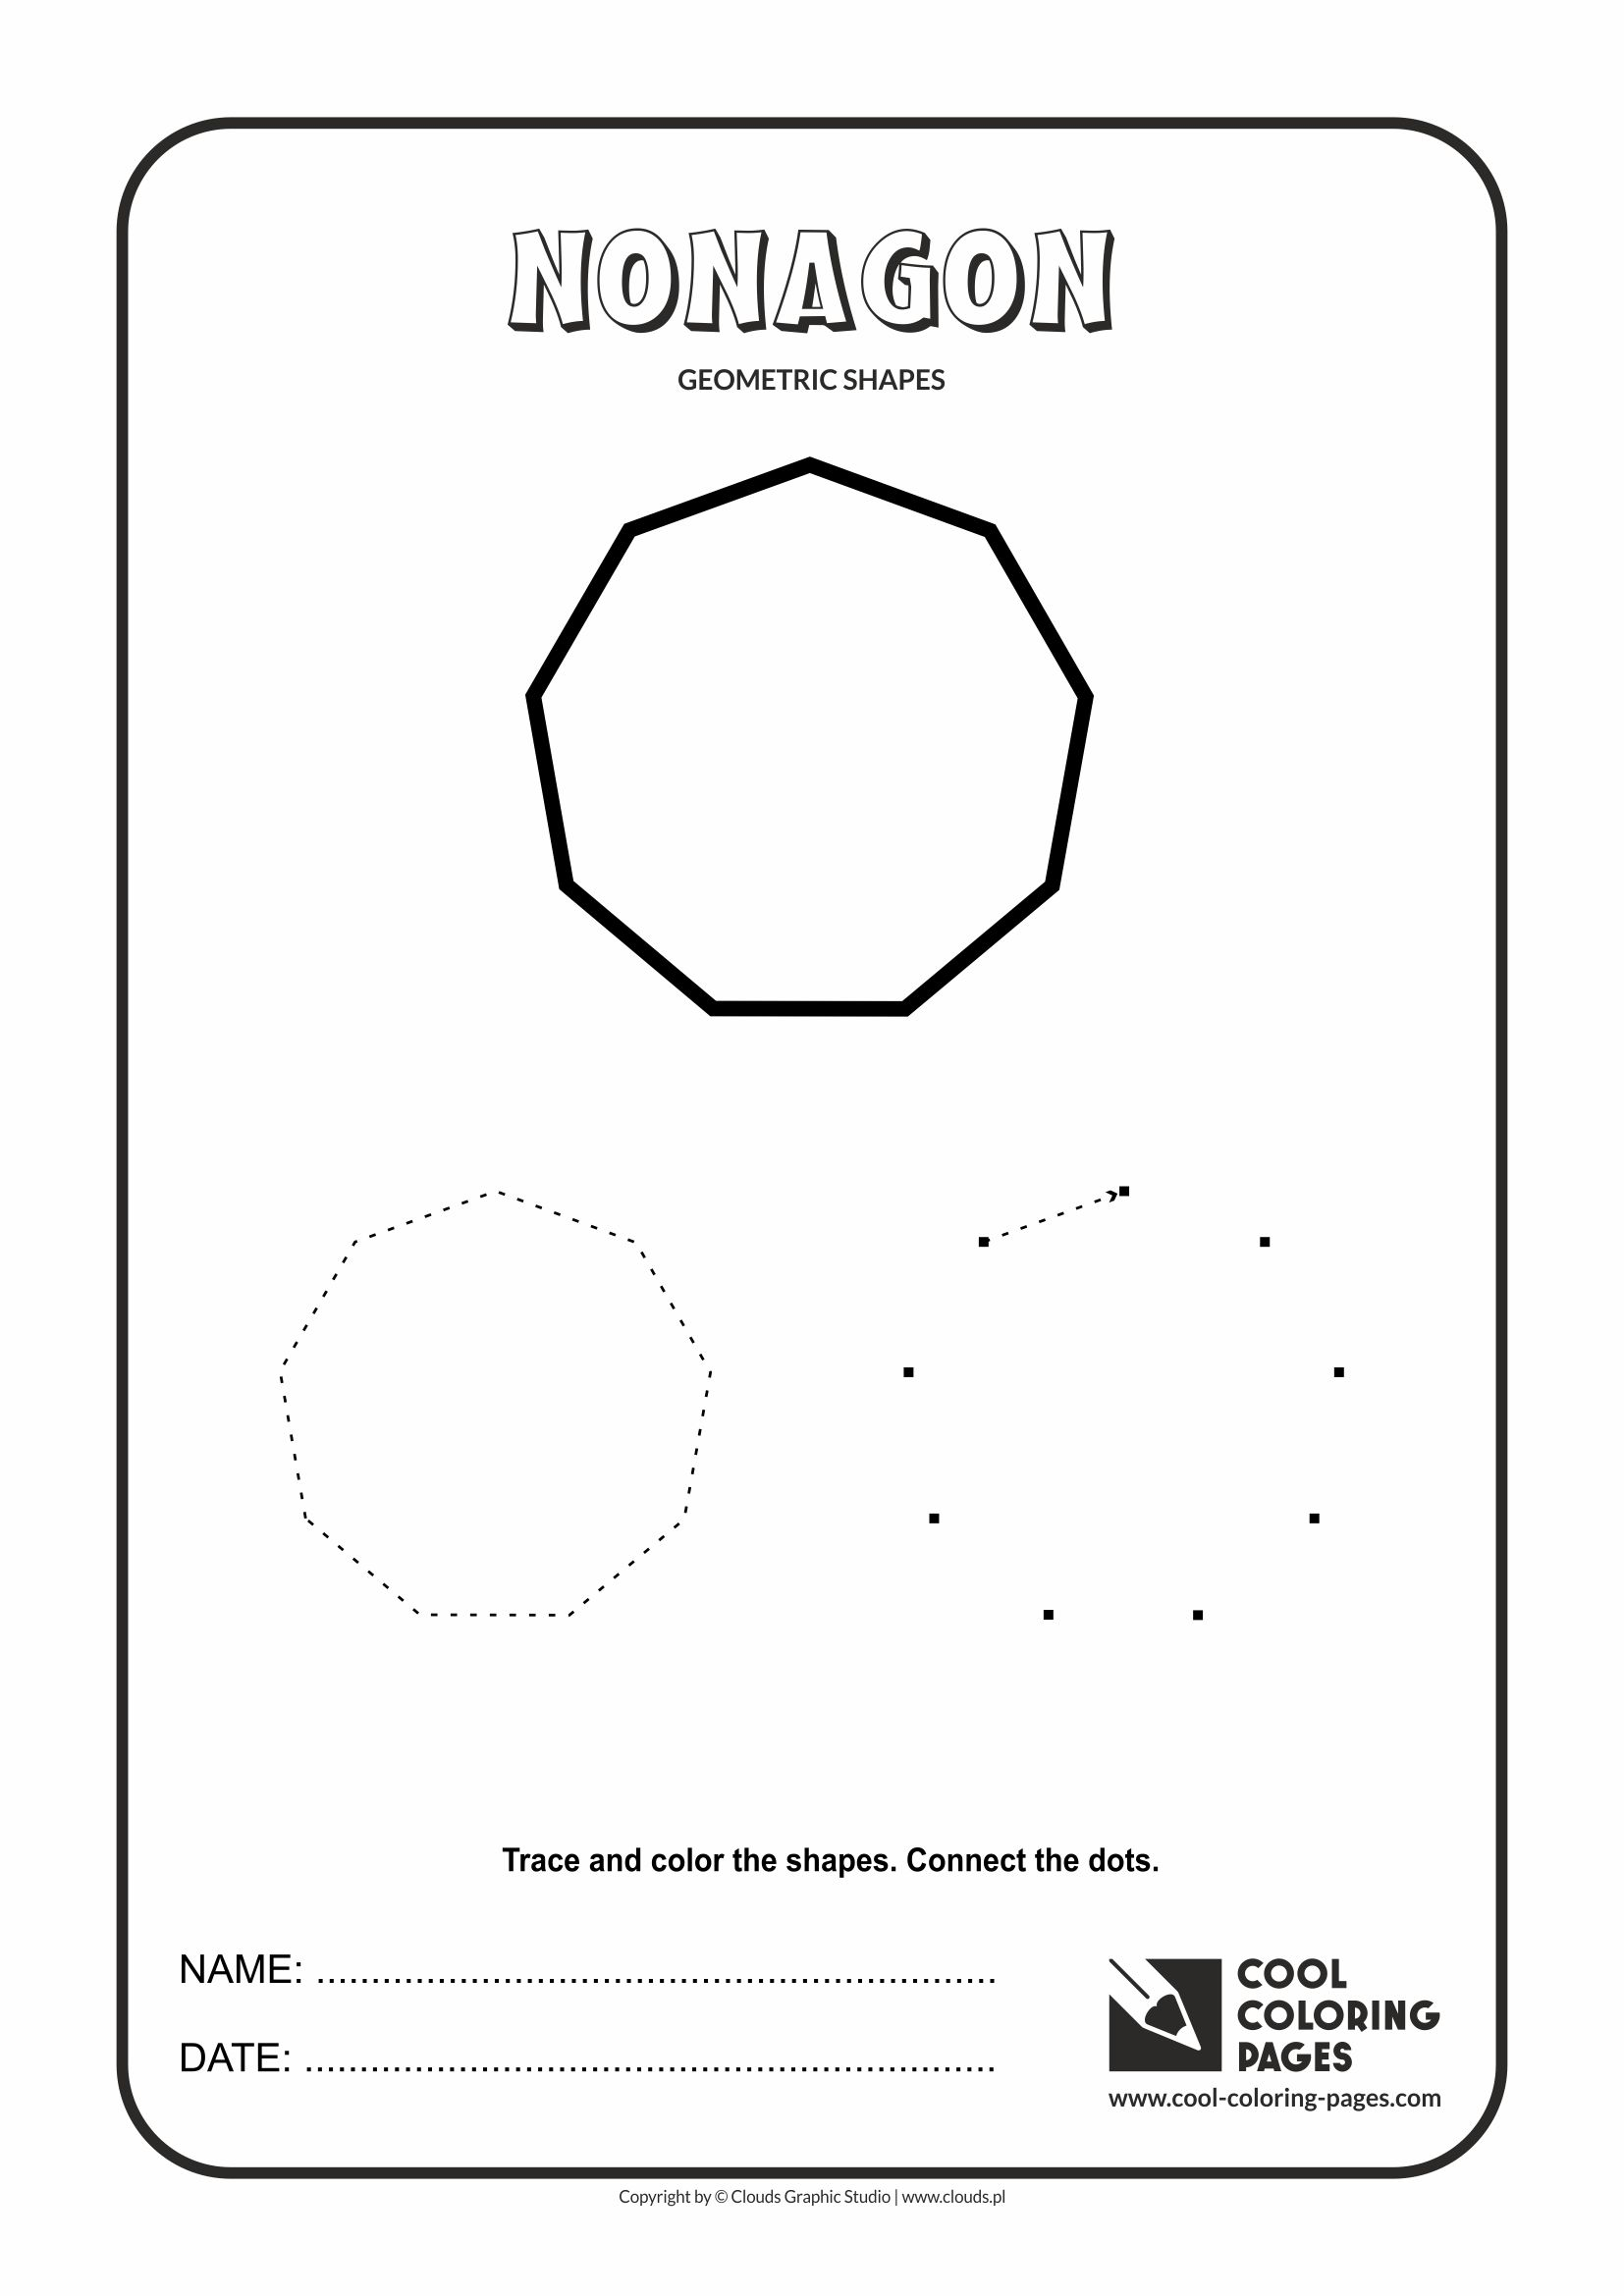 Cool Coloring Pages - Geometric shapes / Nonagon